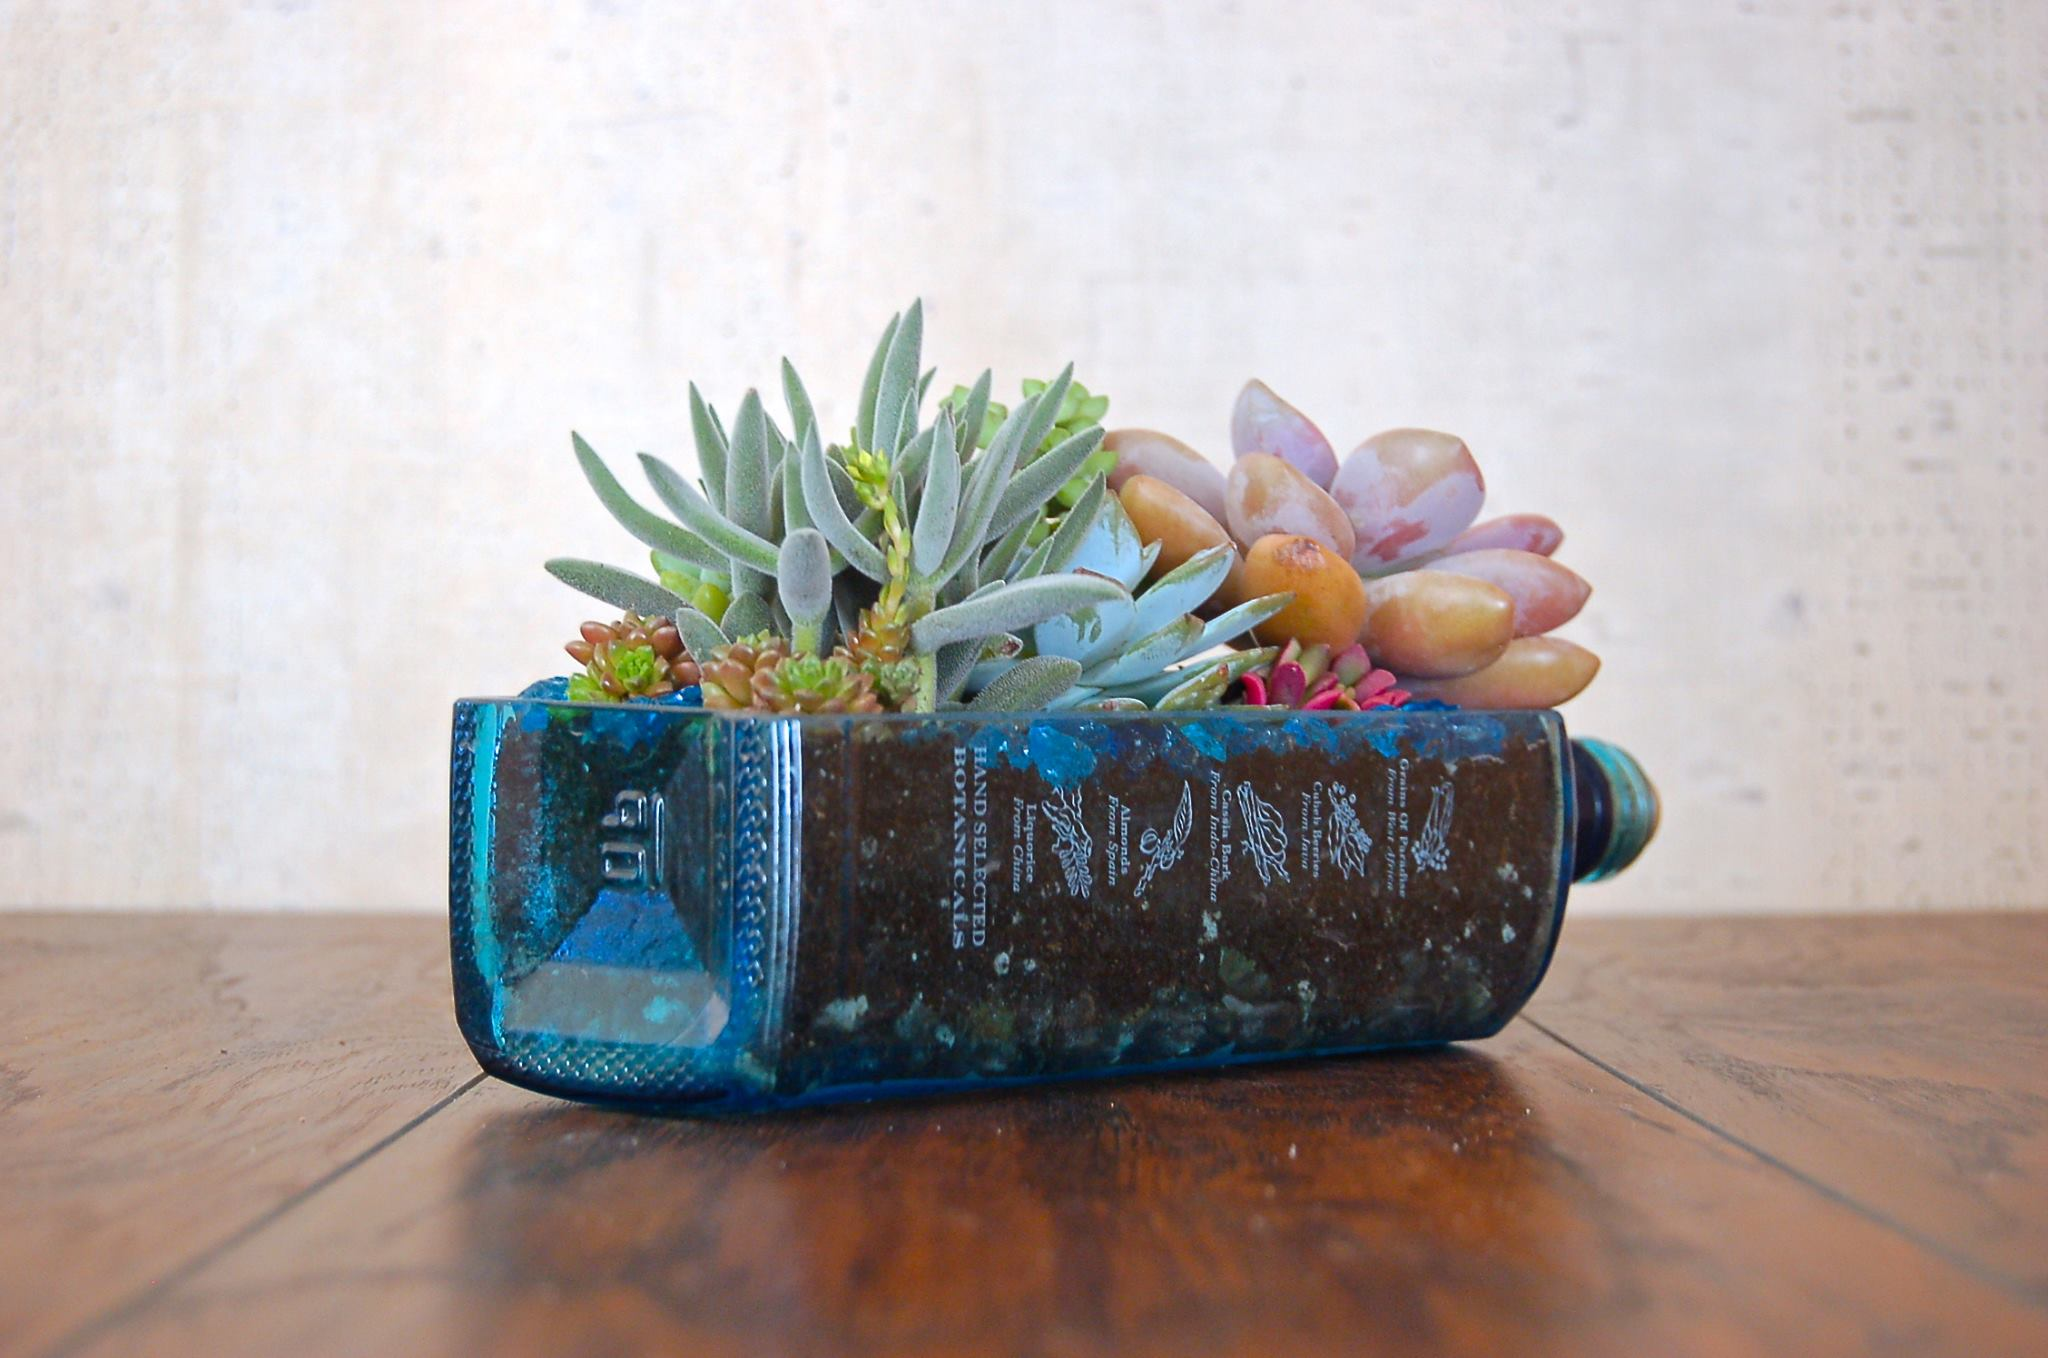 Bombay 174 Sapphire Long Cut Liquor Bottle Planter Pot